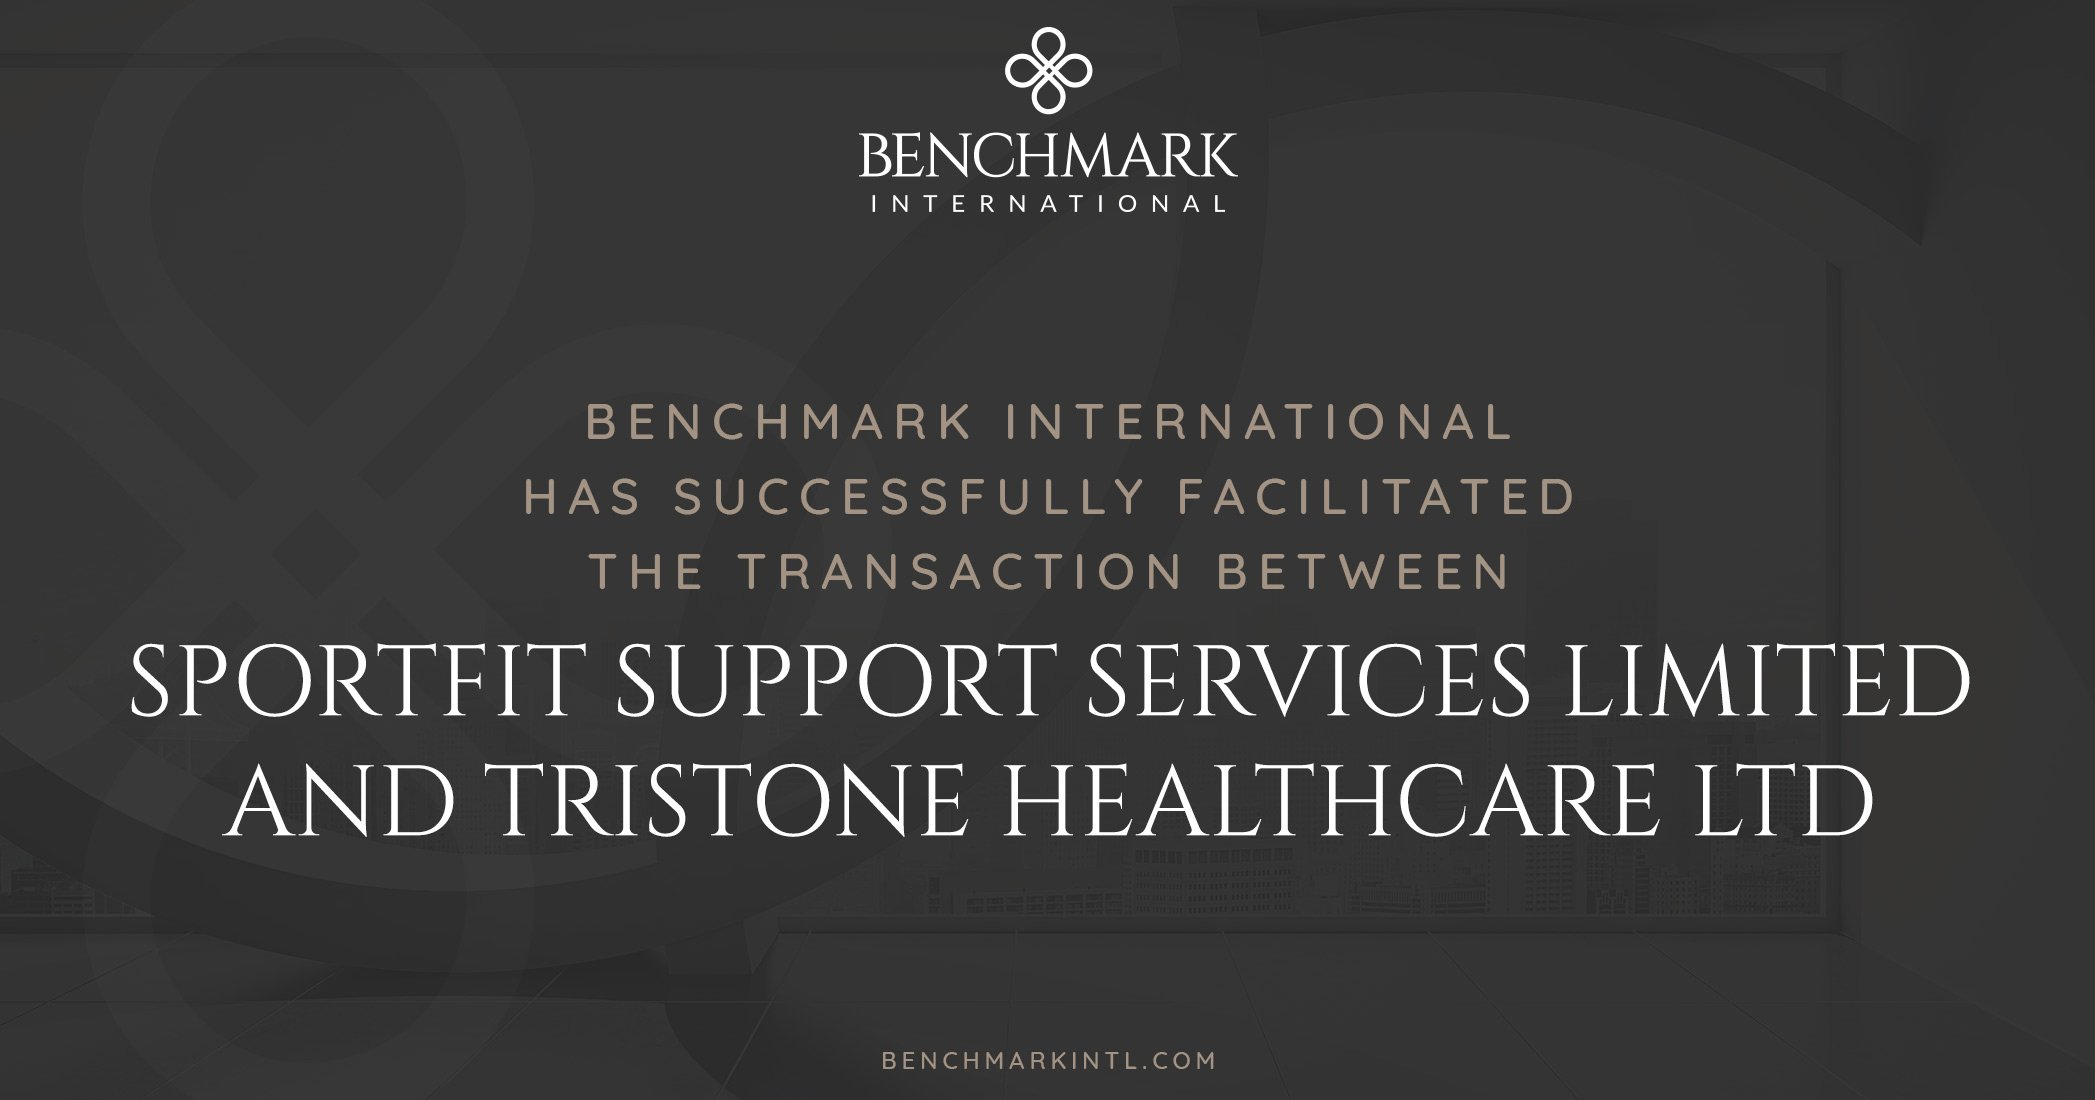 Benchmark International Successfully Facilitated the Transaction Between Sportfit Support Services Limited and Tristone Healthcare Ltd